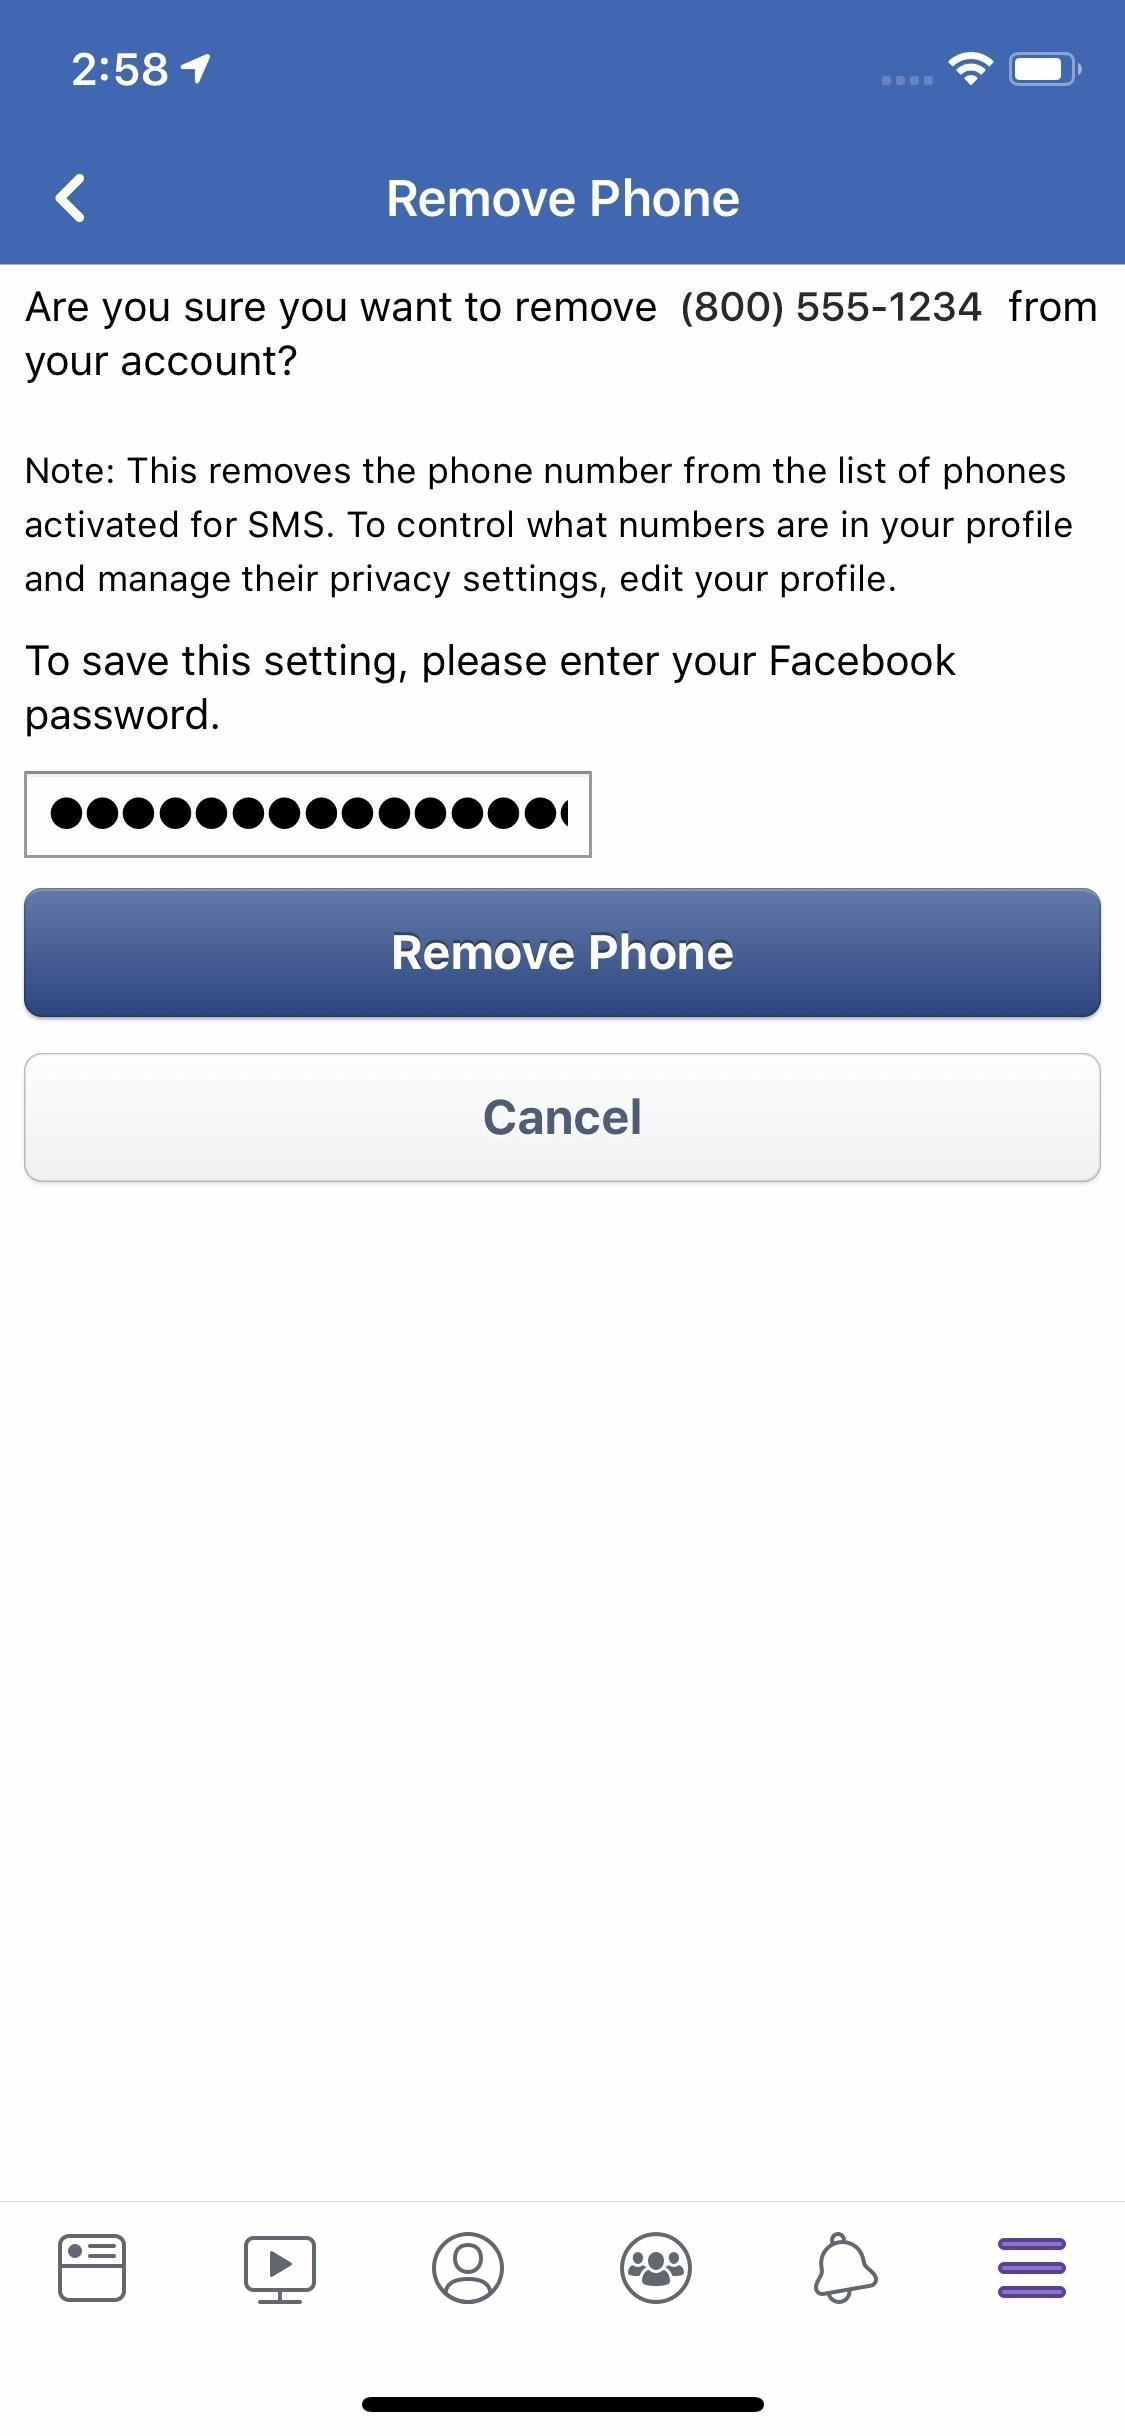 How to secure your Facebook account with 2FA - Without making your phone number public